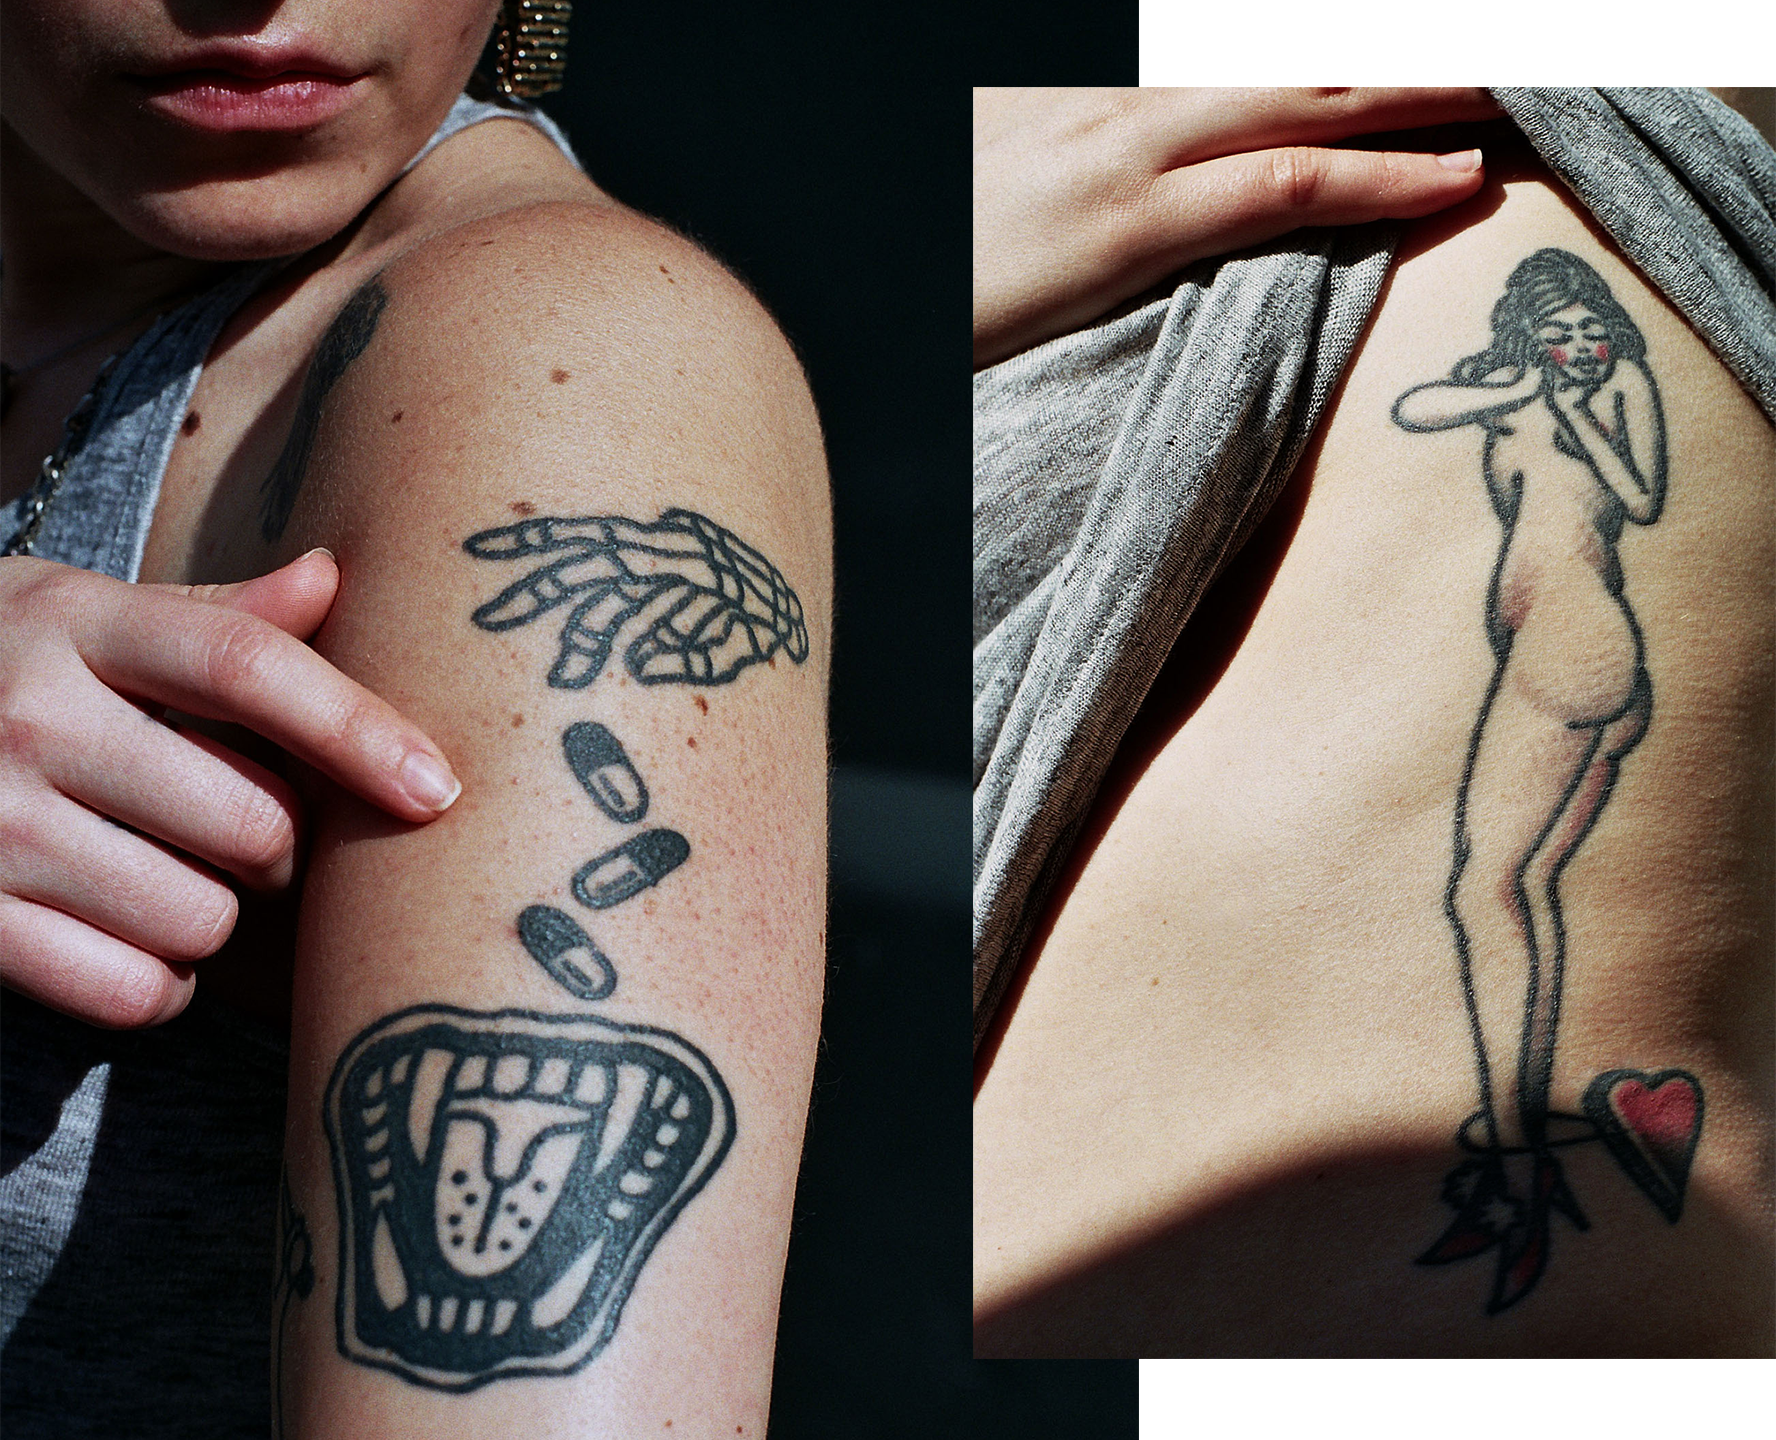 Tattoo Meaning Young Women Trend Body Image Photos